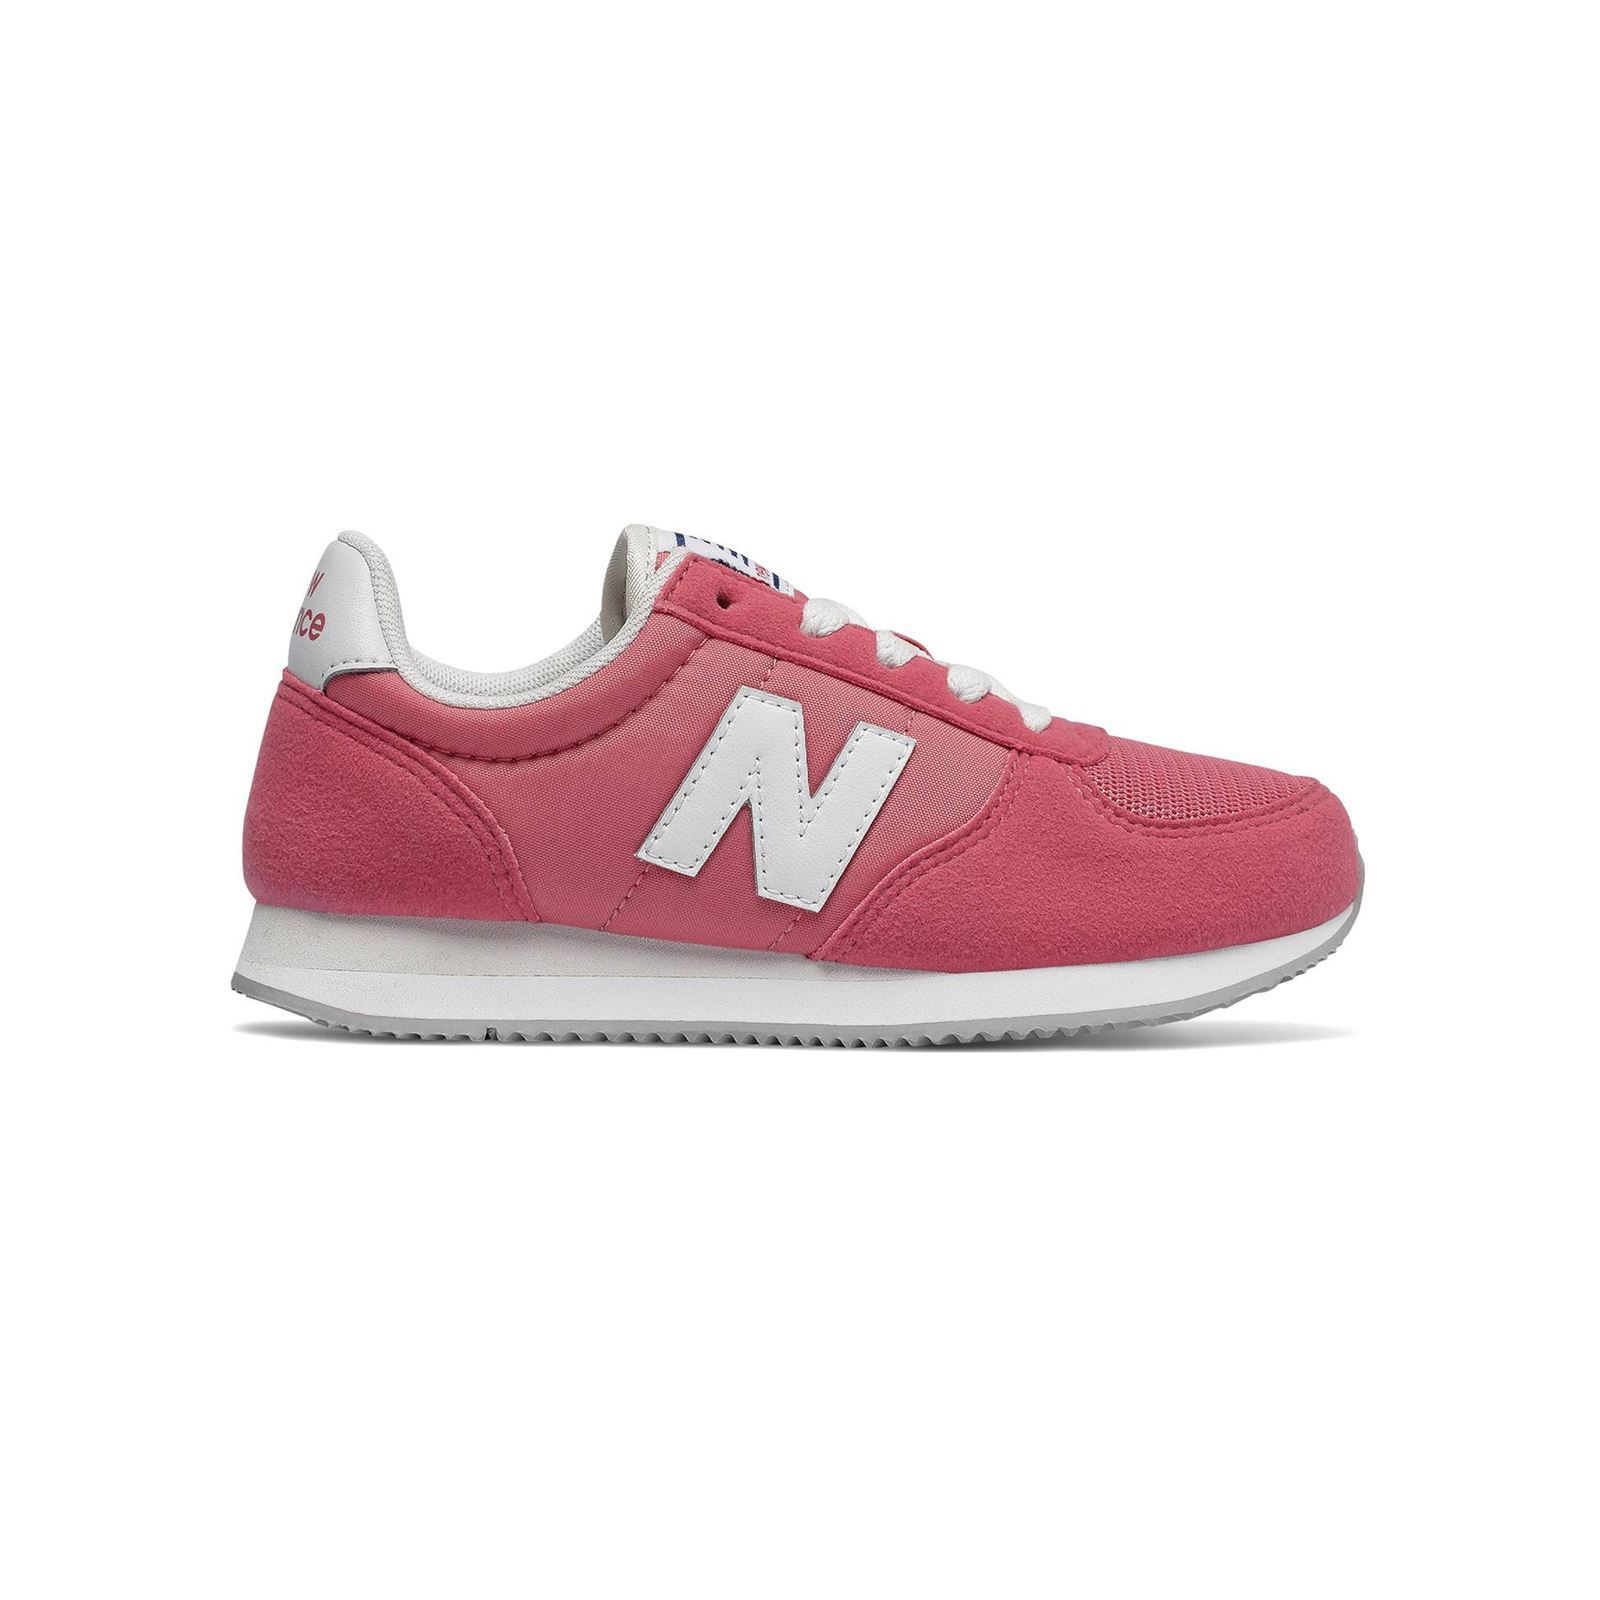 New Balance KL220 - Baskets Mode - rose